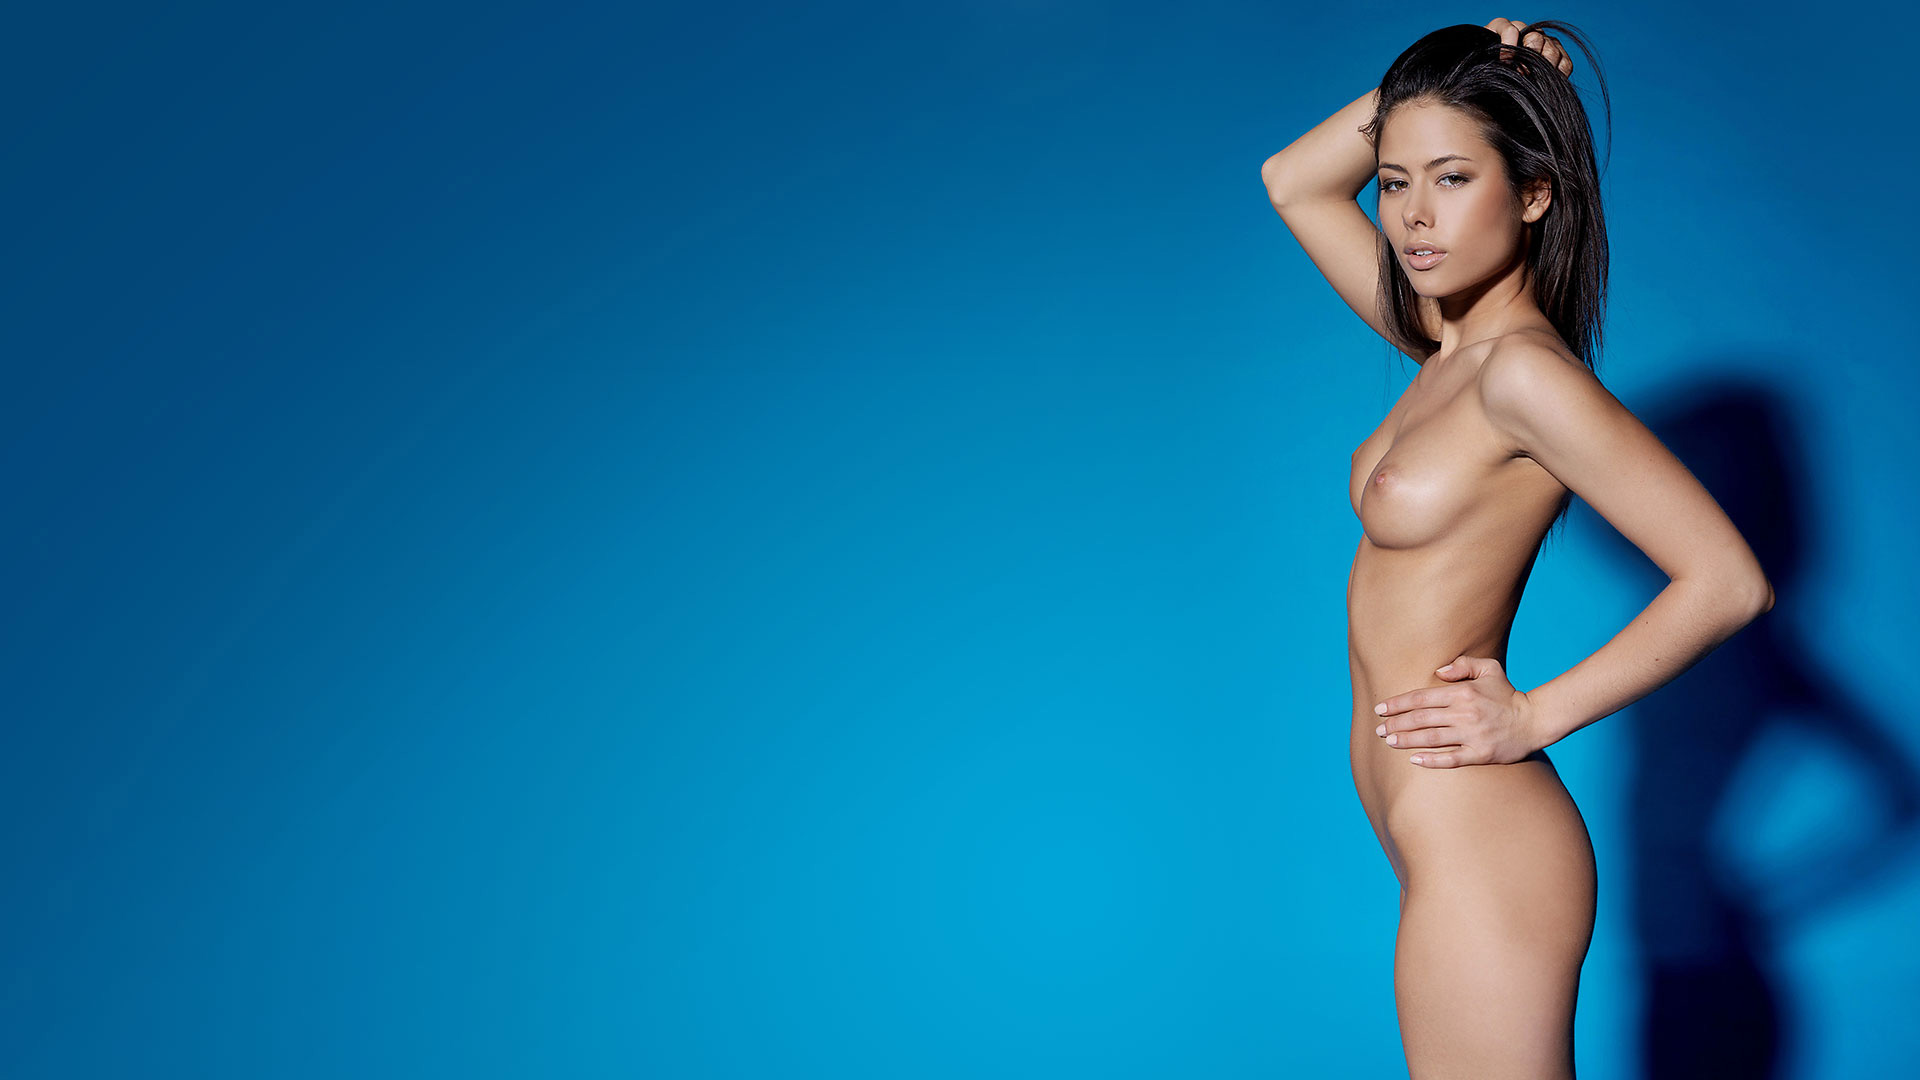 Naked girl woman wallpaper erotica image